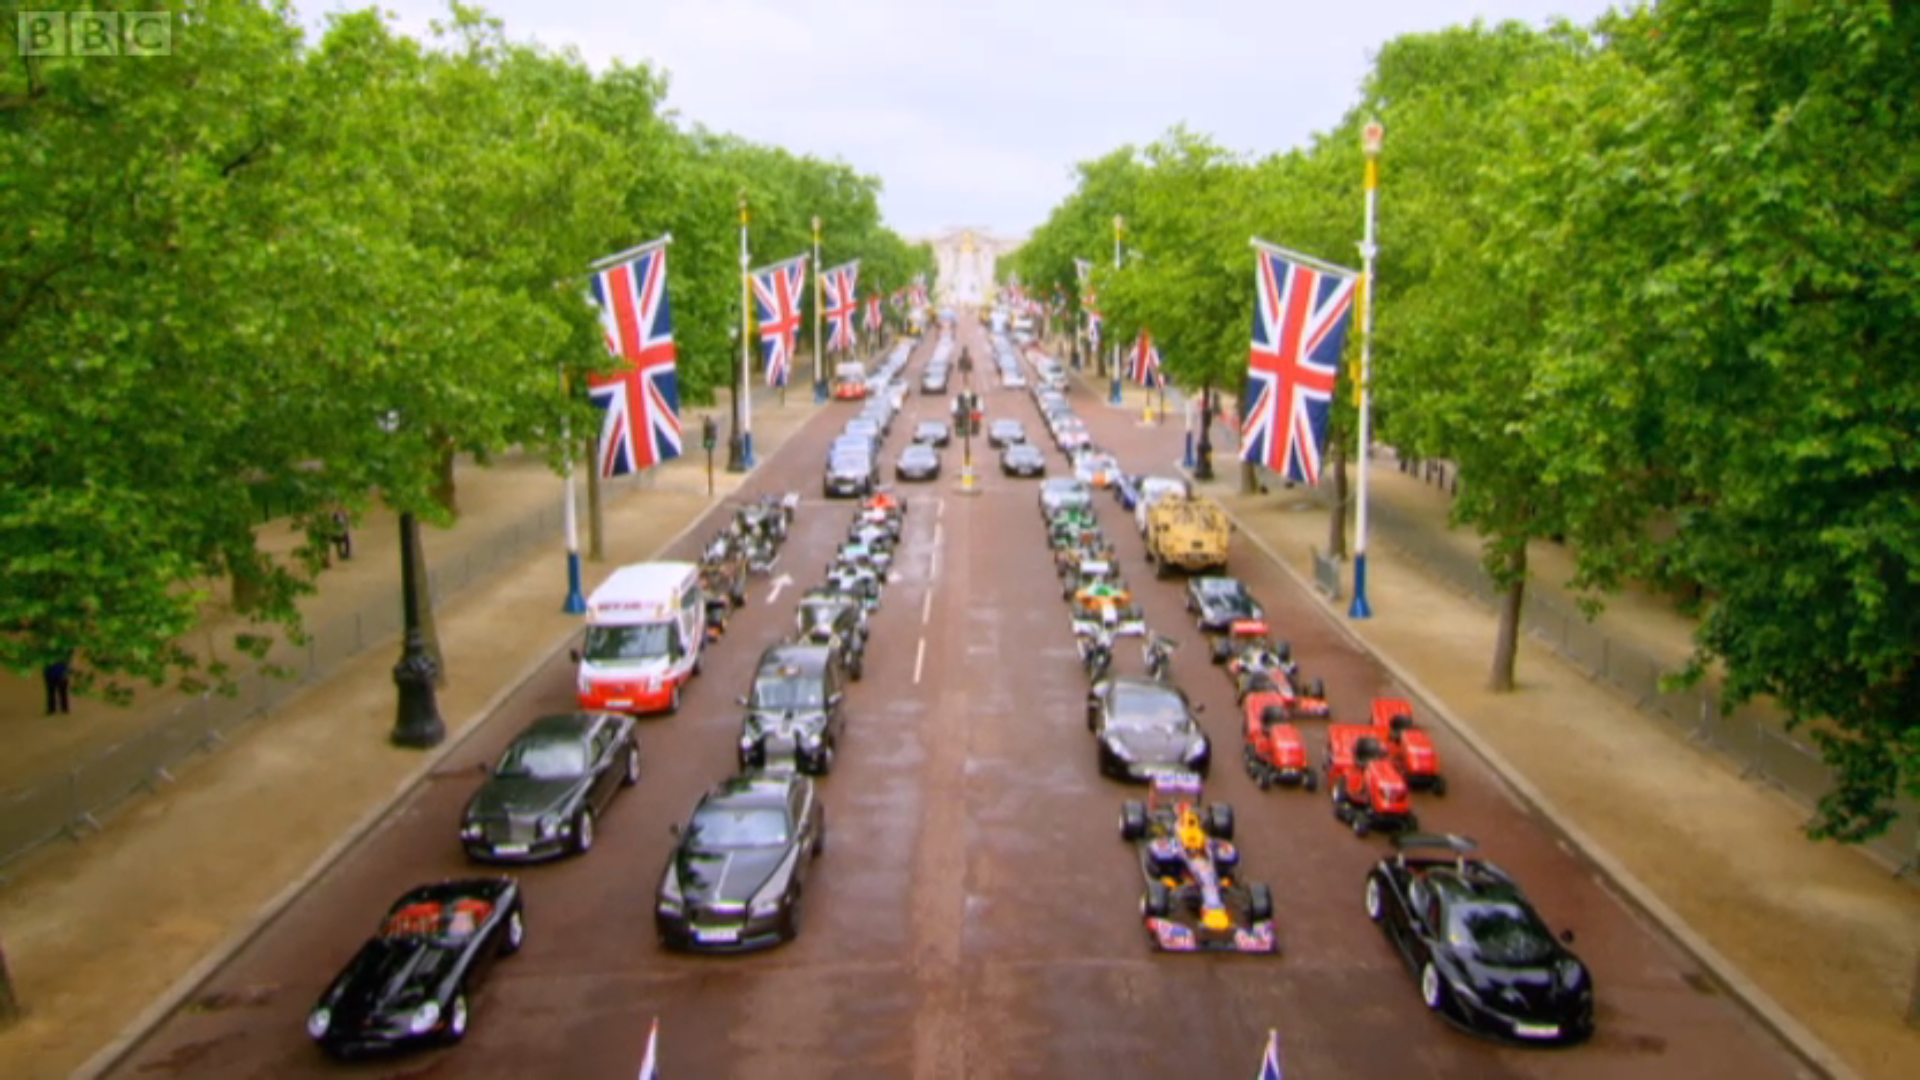 bbc top gear celebrates the uk automotive industry - smmt